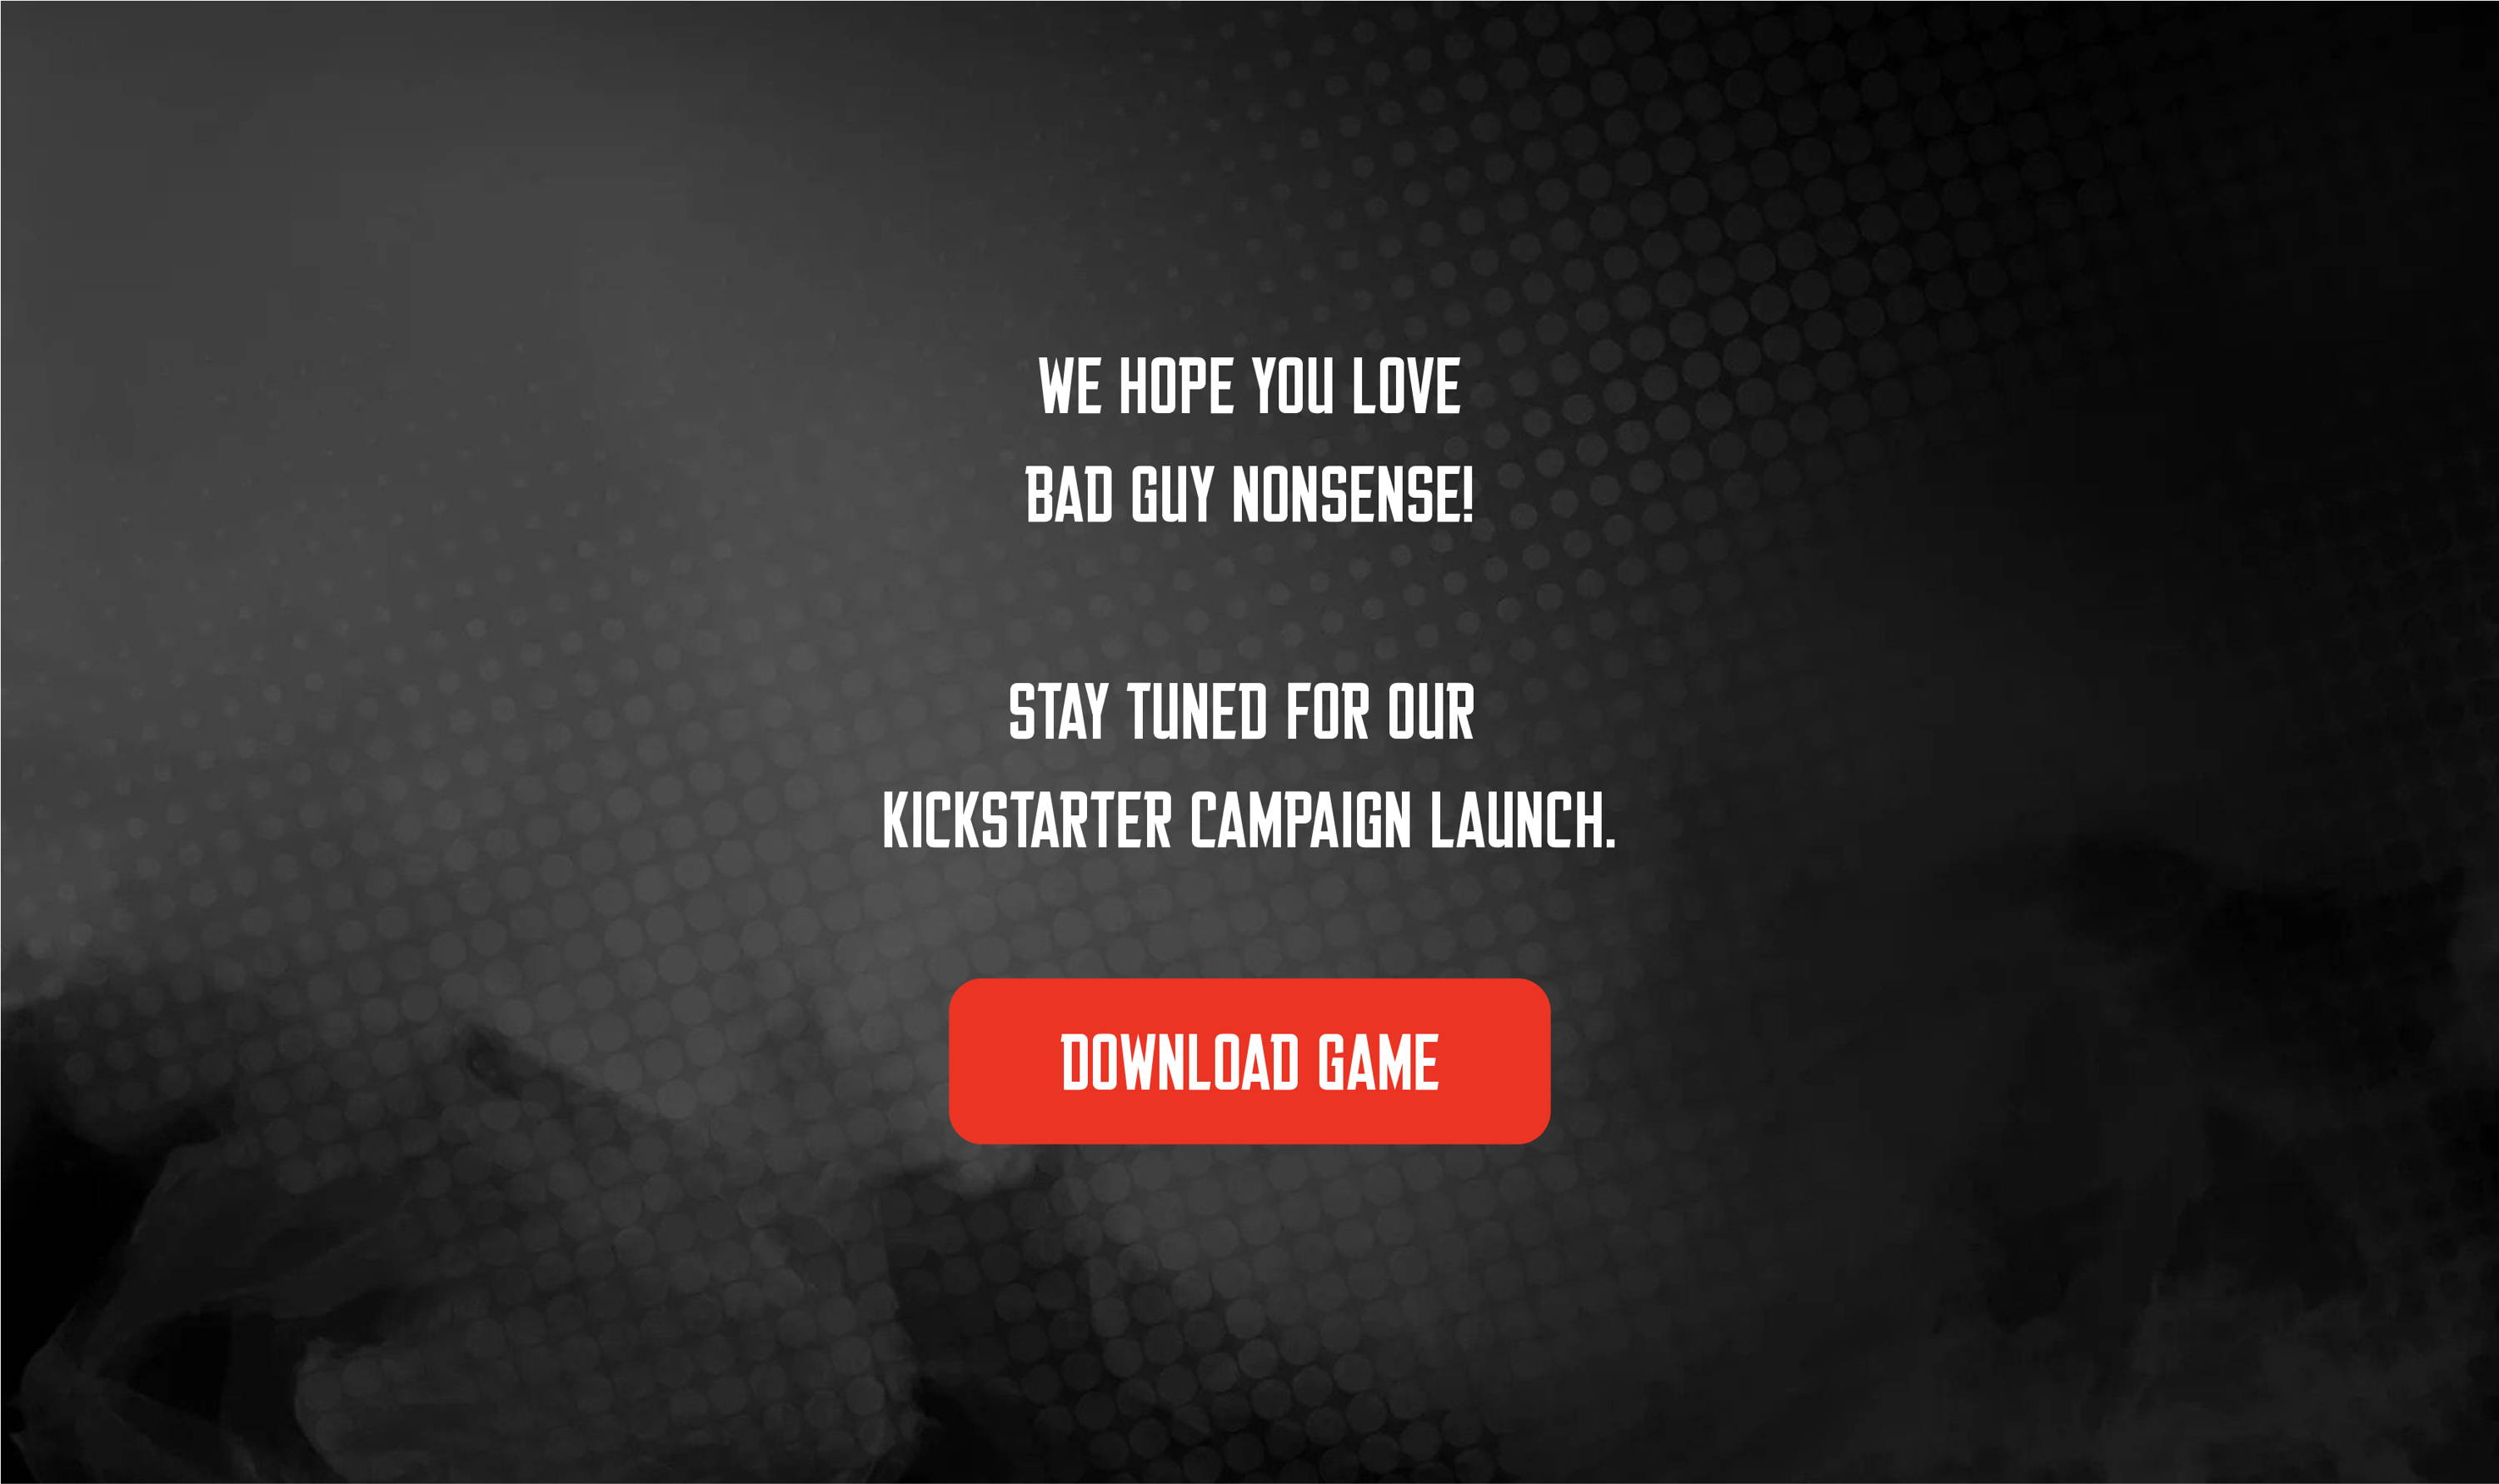 We hope you love bad guy nonsense! Stay tuned for our Kickstarter Campaign Launch. DOWNLOAD GAME